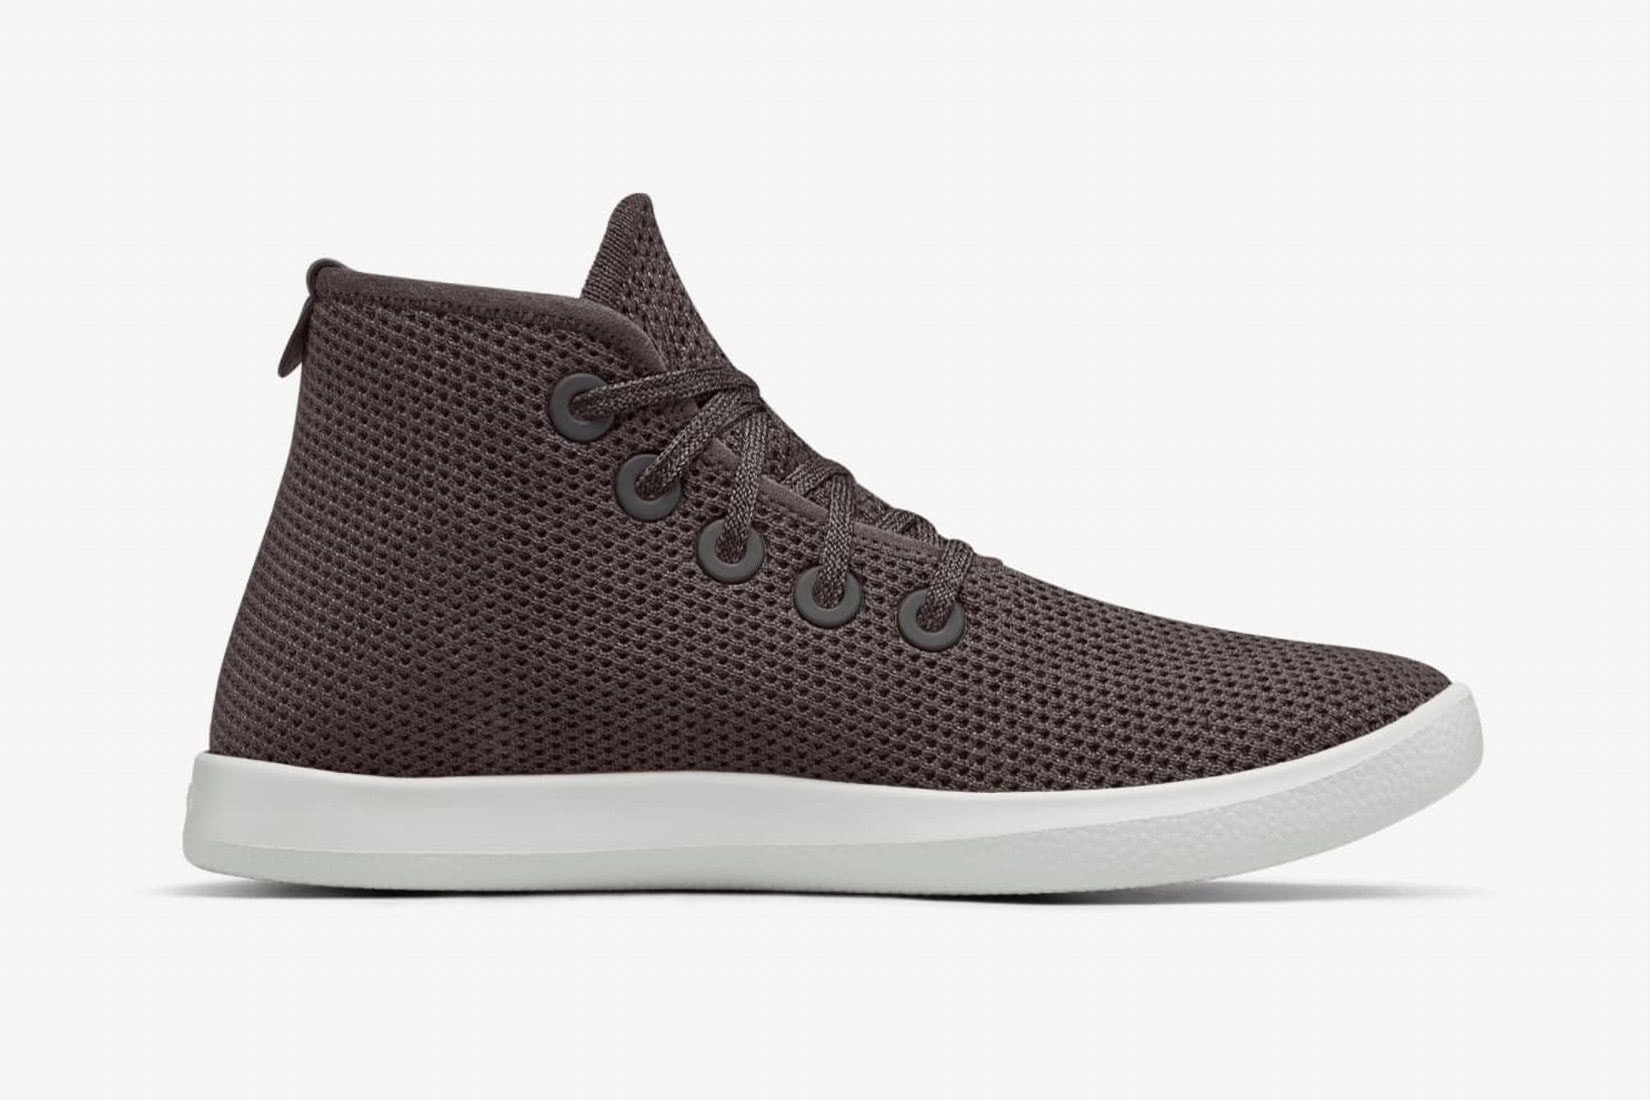 Allbirds sneakers review high-tops tree toppers - Luxe Digital